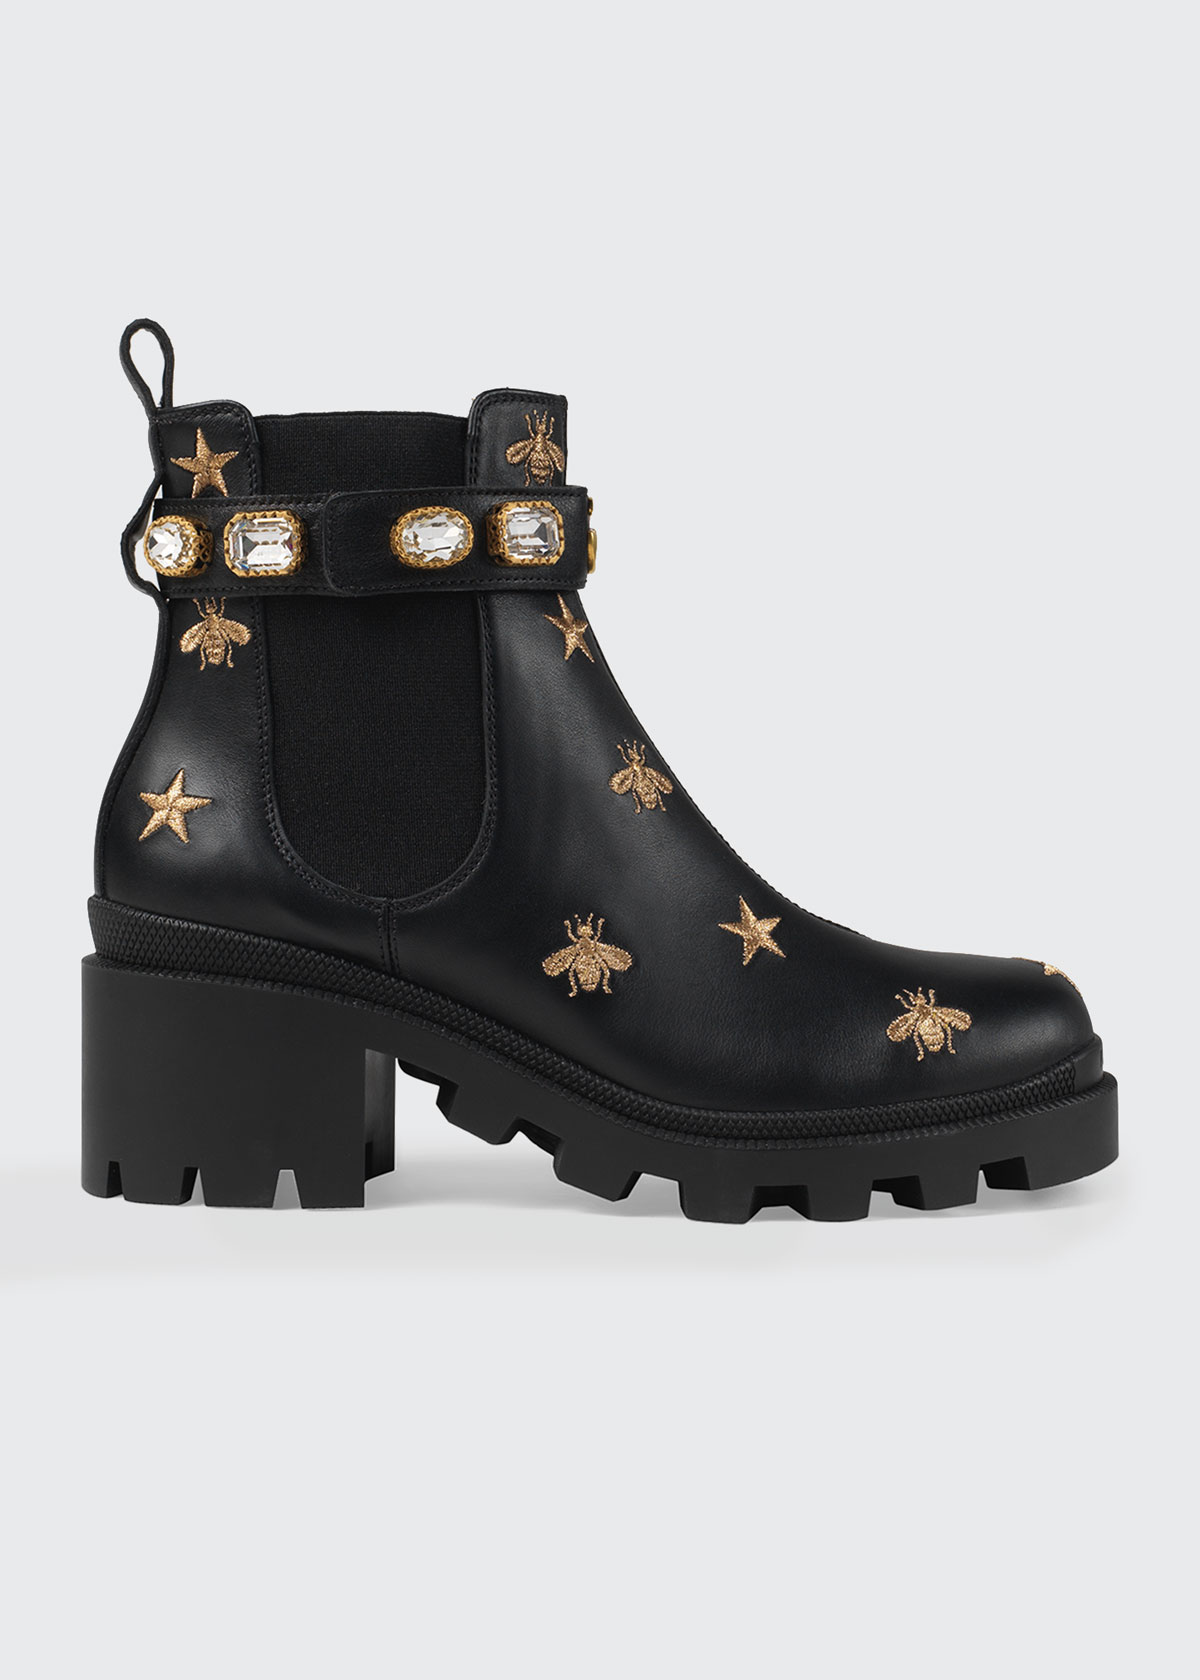 Trip Boot With Star And Bee Embroidery, Black